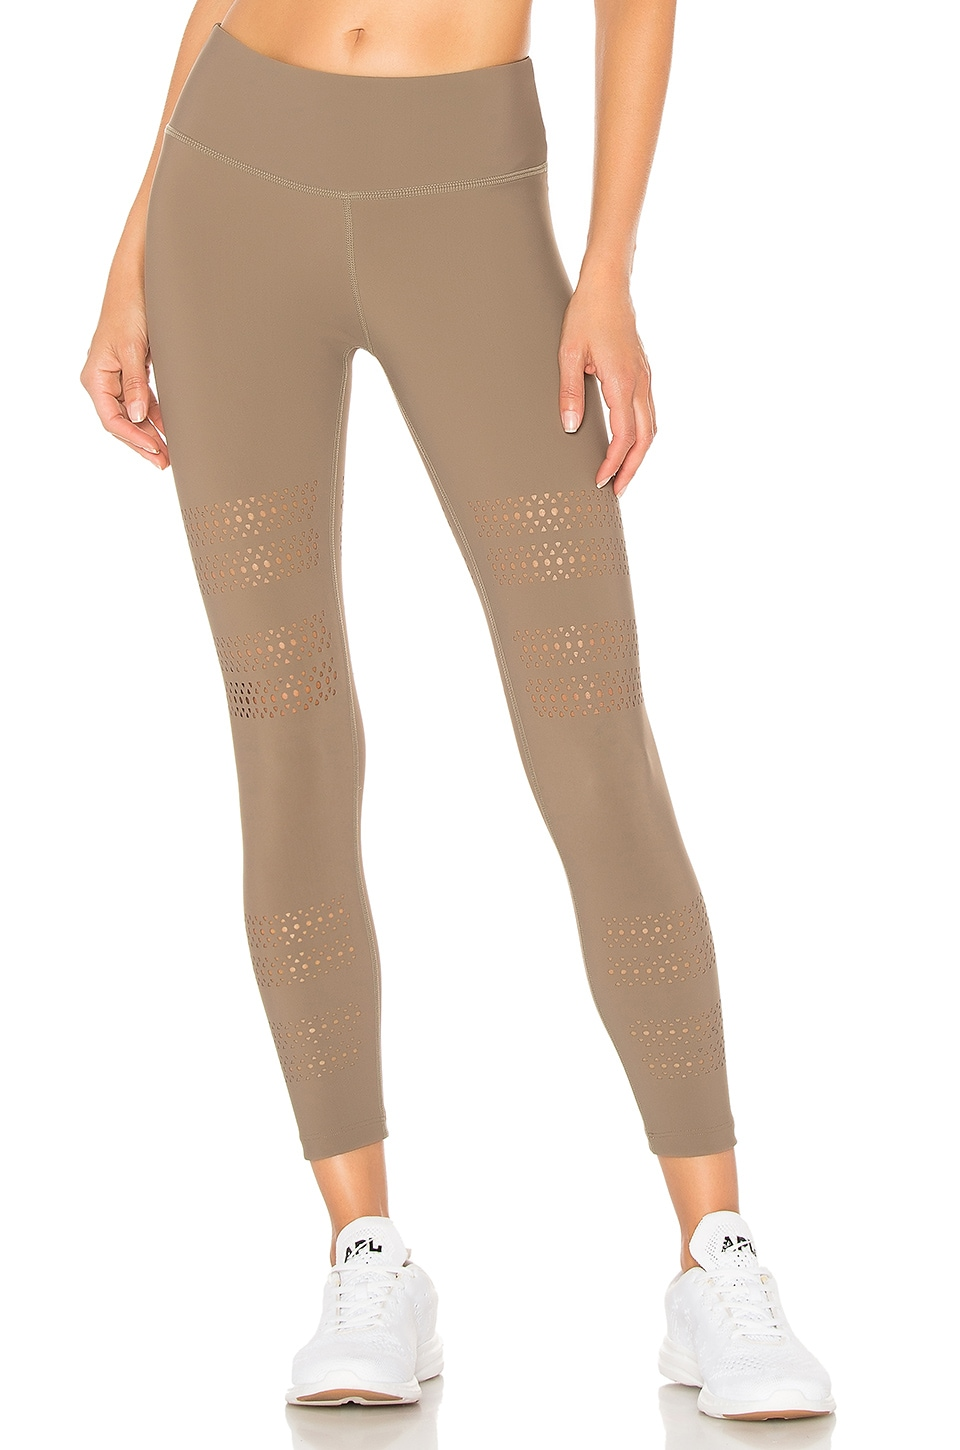 Track & Bliss Go With The Flow Leggings in Beige